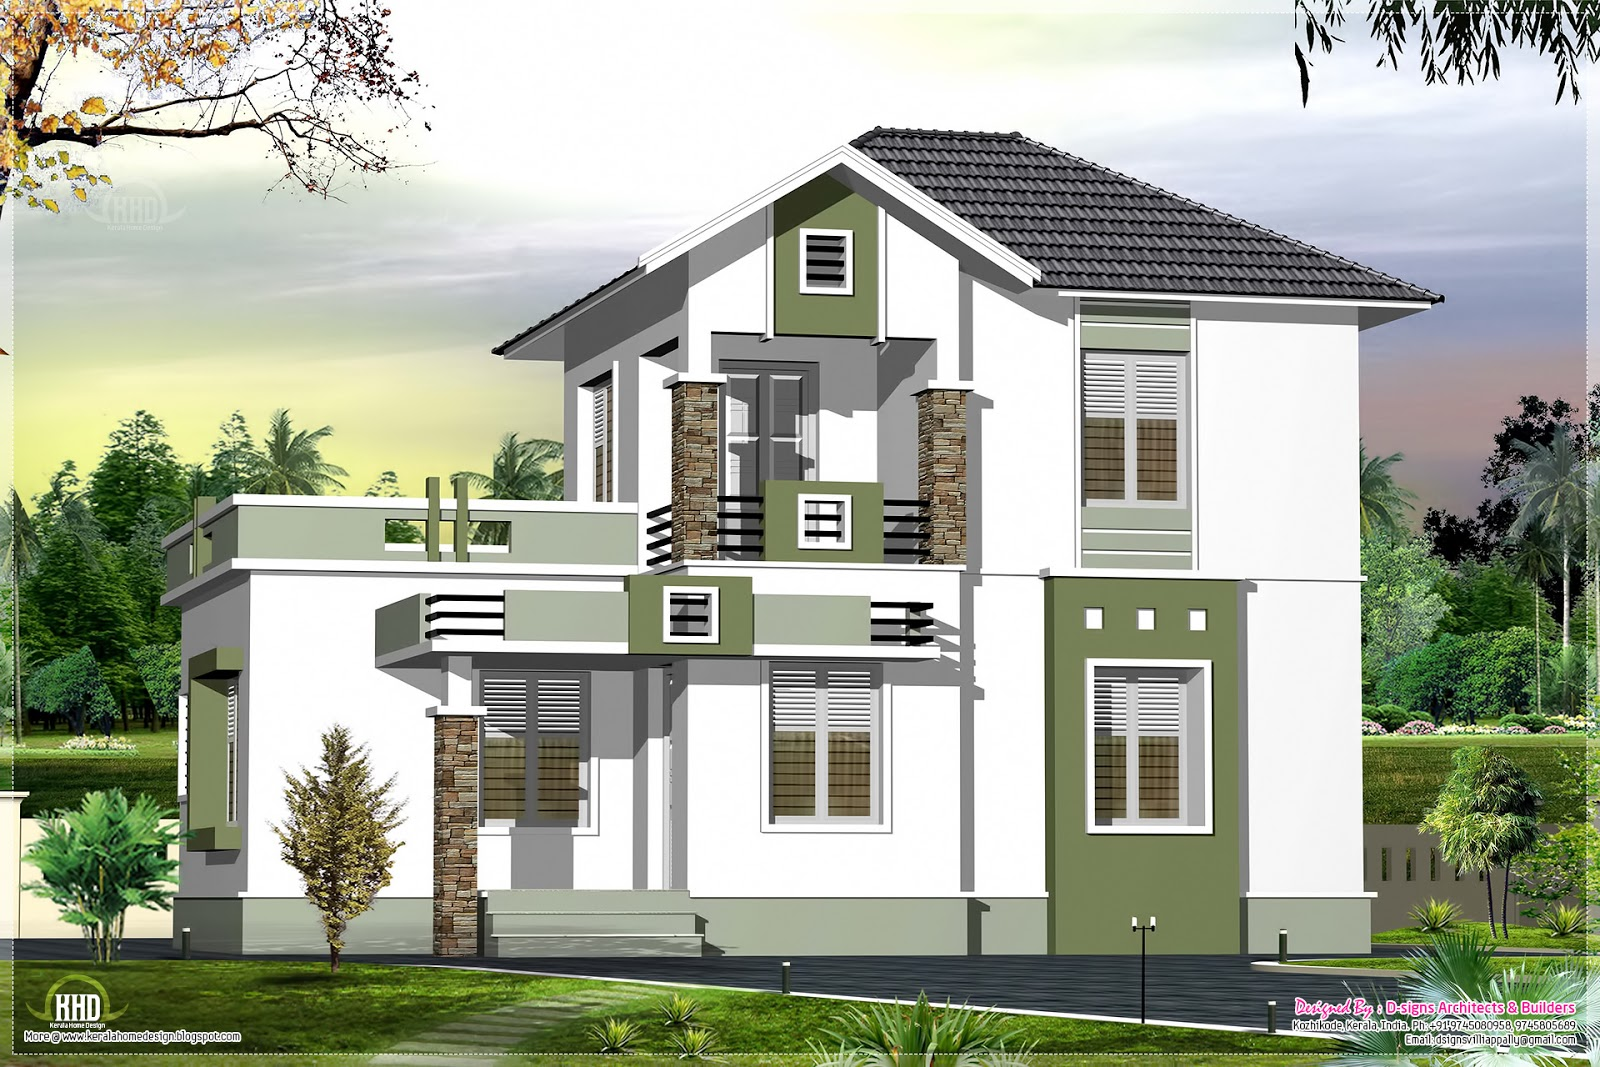 Kerala home design and floor plans 1484 south for Small house budget philippines